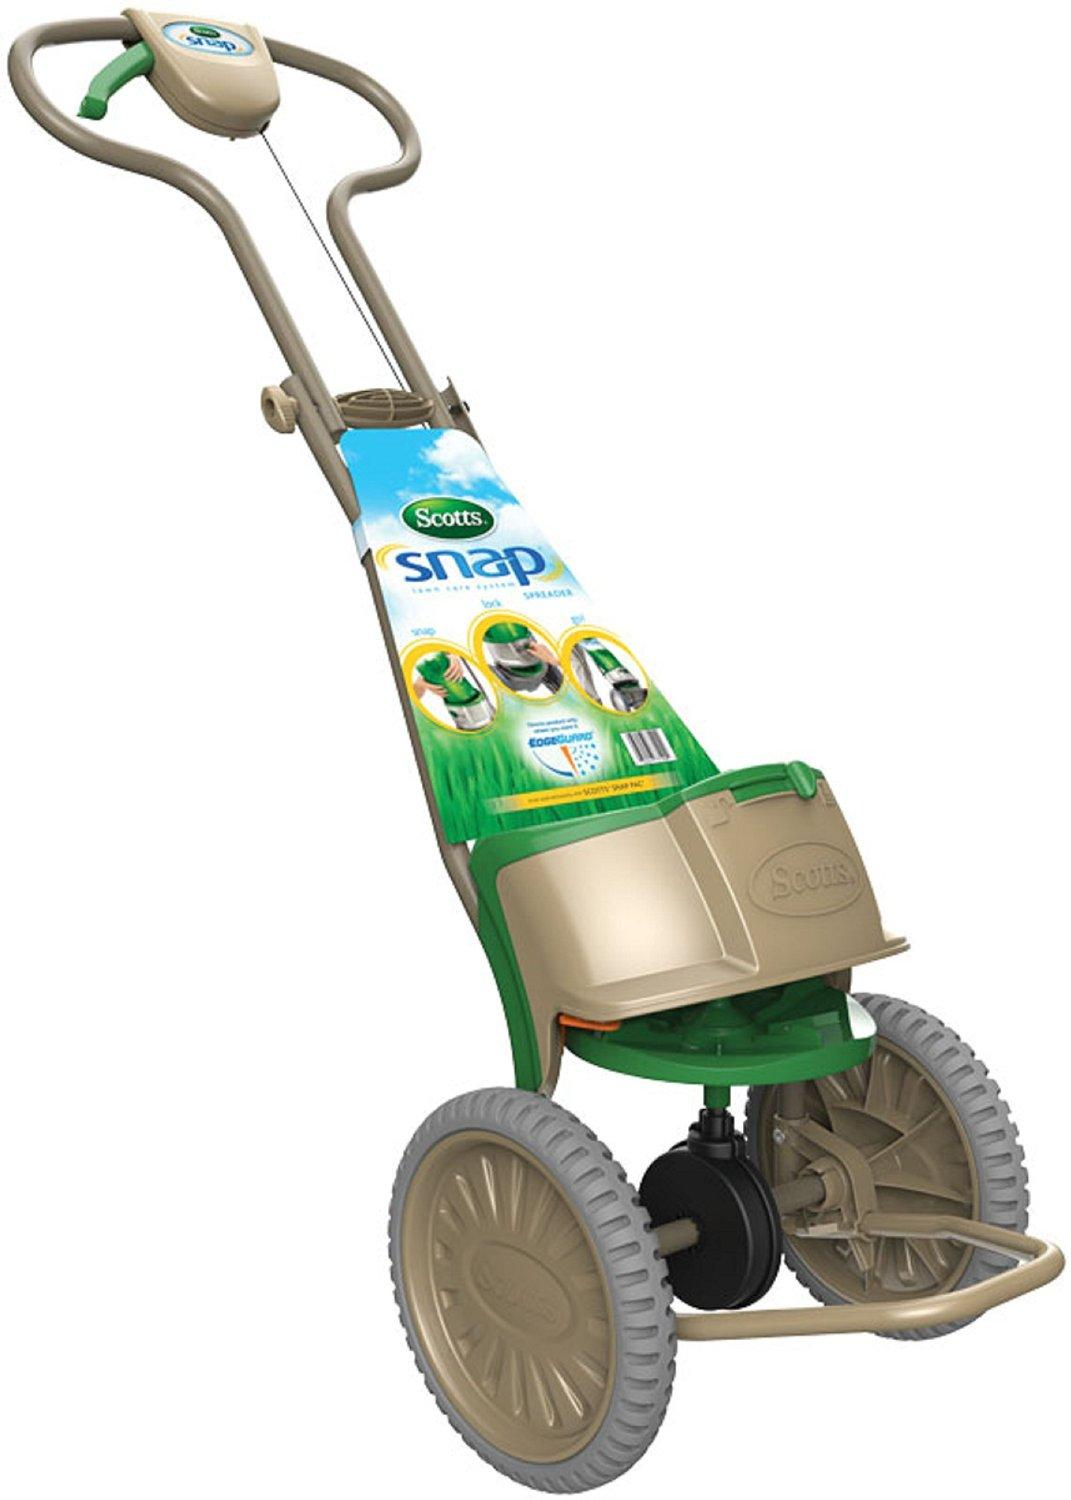 Scotts Lawns 77105A Snap Spreader